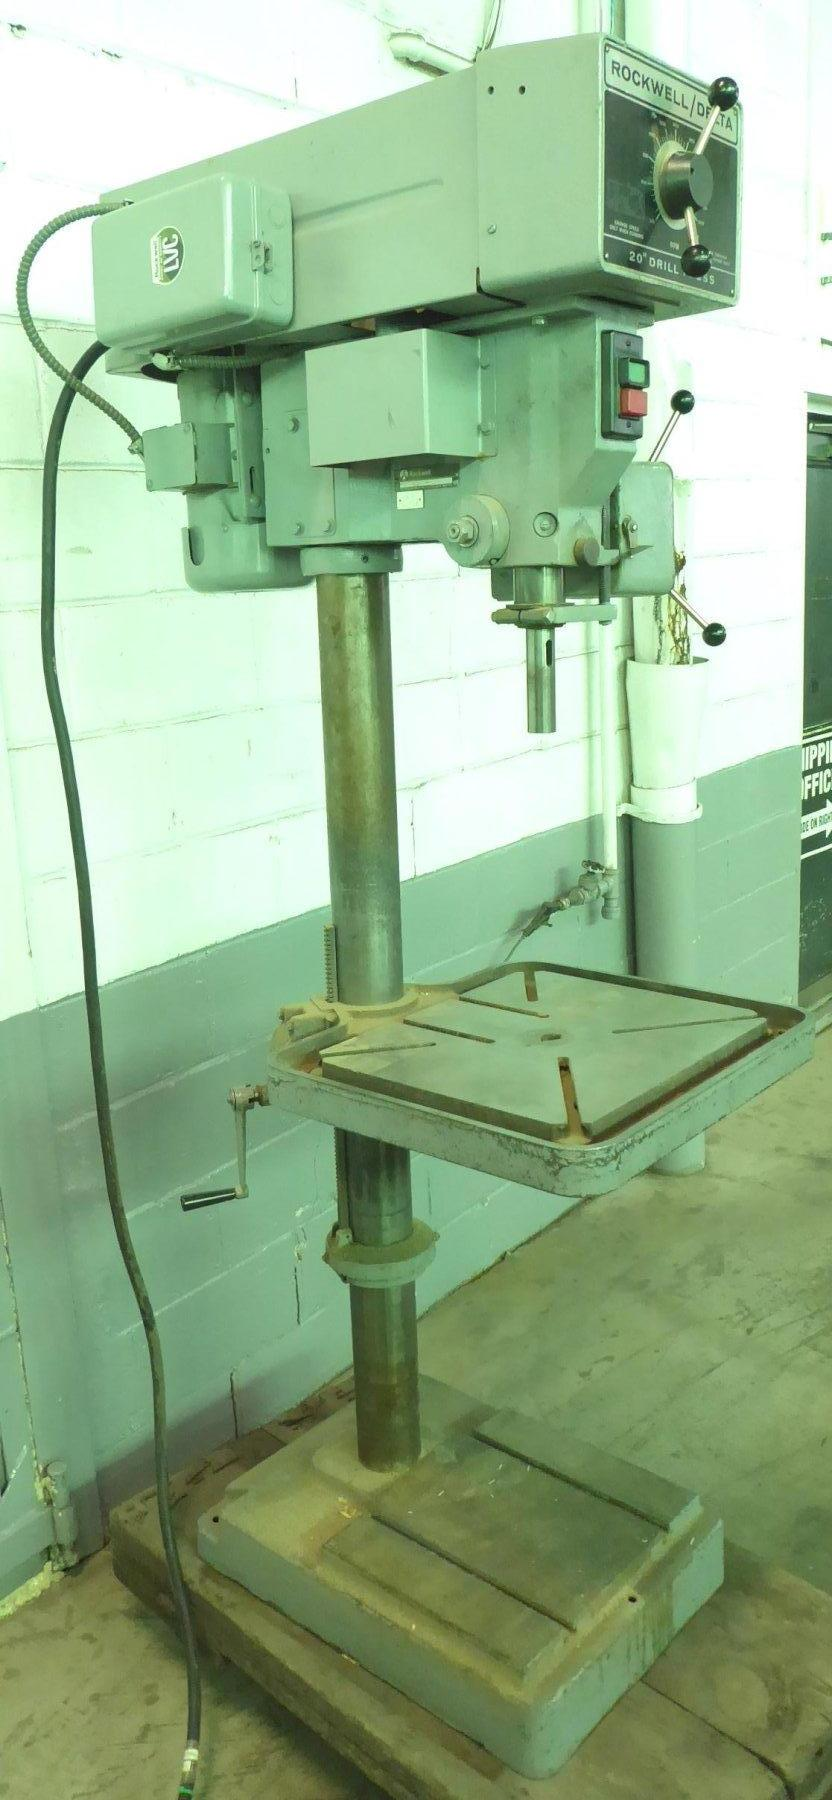 """20"""" Rockwell/Delta Single Spindle Drill, Floor Type, Vari-Speed 375-3750 RPM, 3 M.T., 22"""" x 19"""" Tbl., 1-1/2 HP, Clean"""